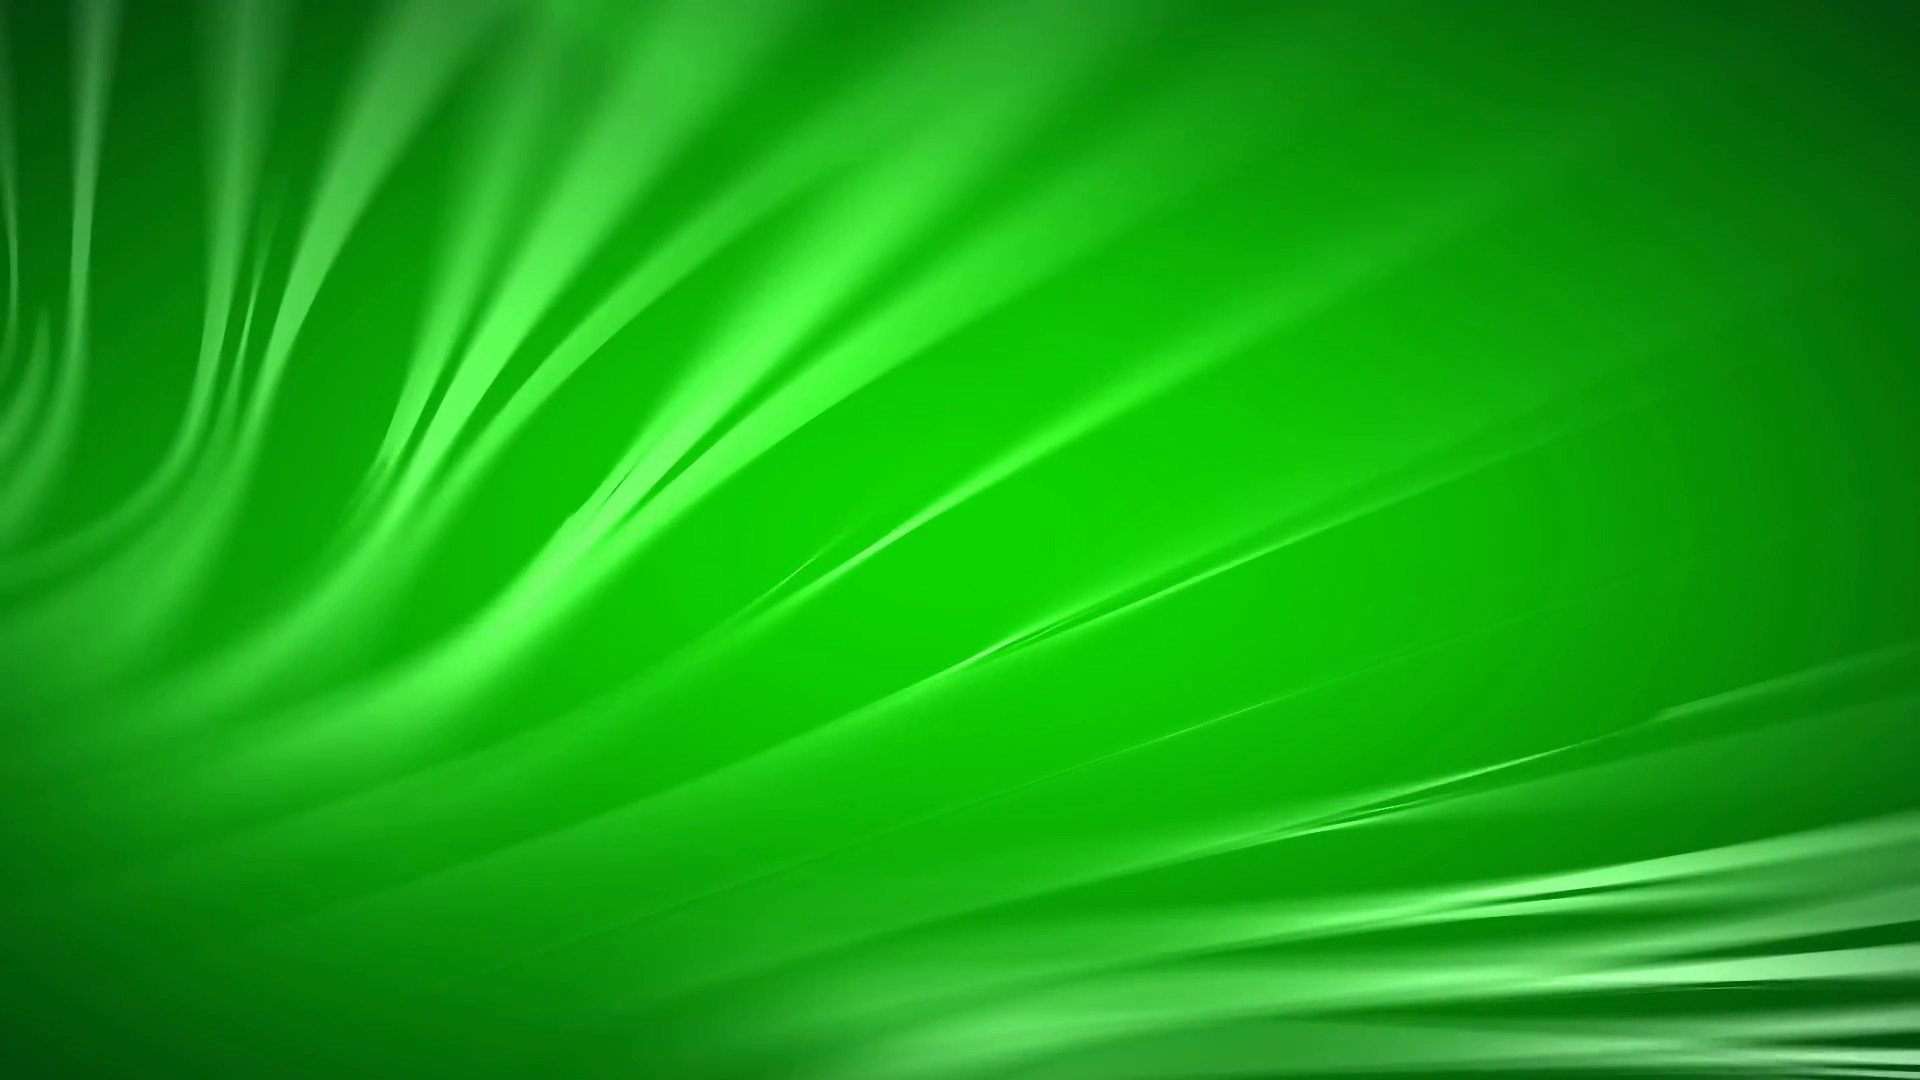 1920x1080 green wavy abstract motion background, PAL